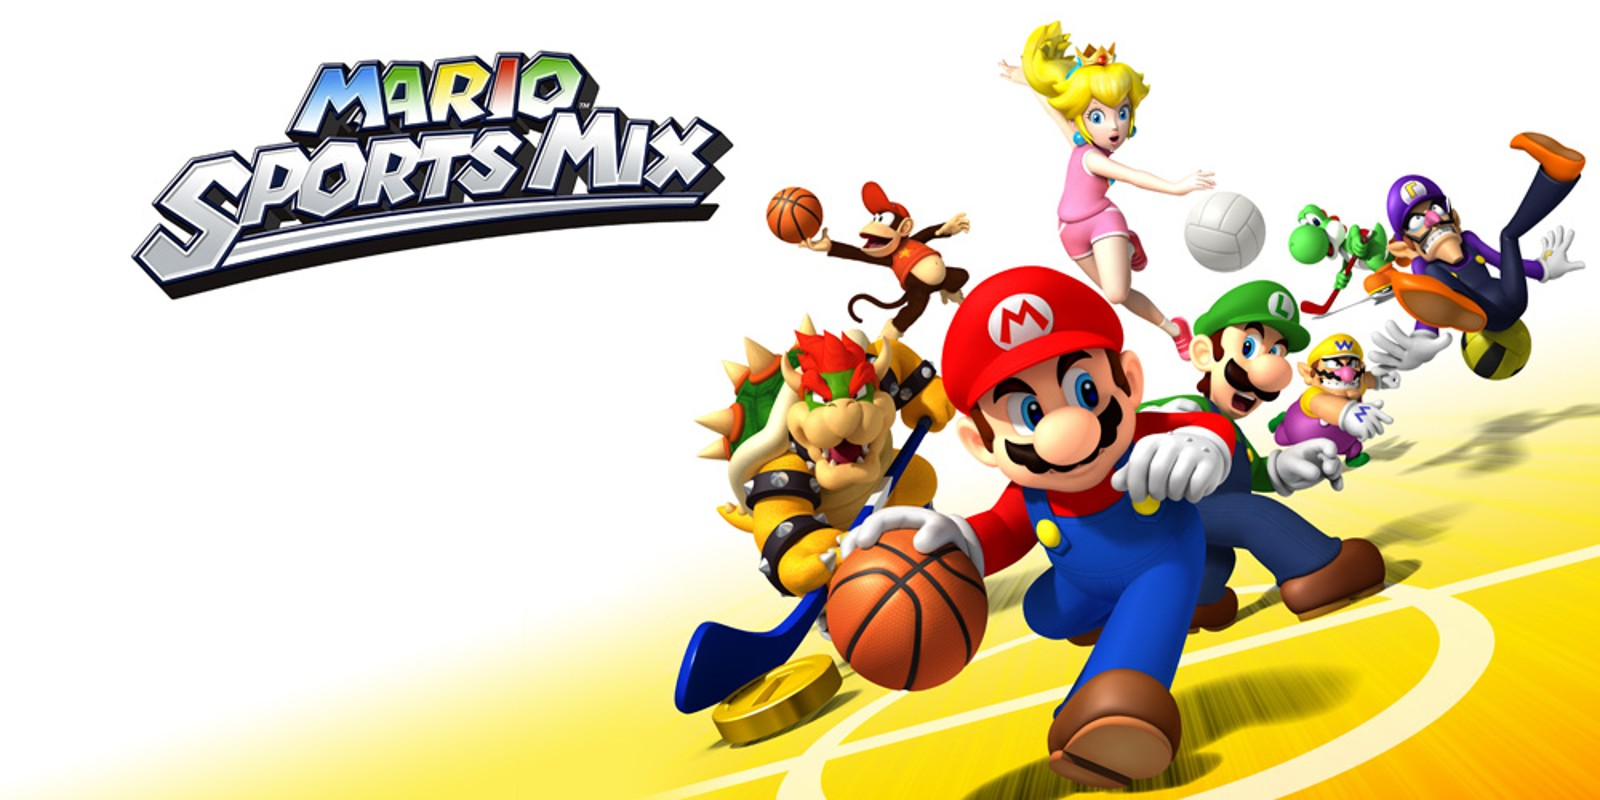 The Big Gaming in the 2010s Discussion Thread (the 2010s-Defining Game currently being discussed) - Page 9 SI_Wii_MarioSportsMix_image1600w